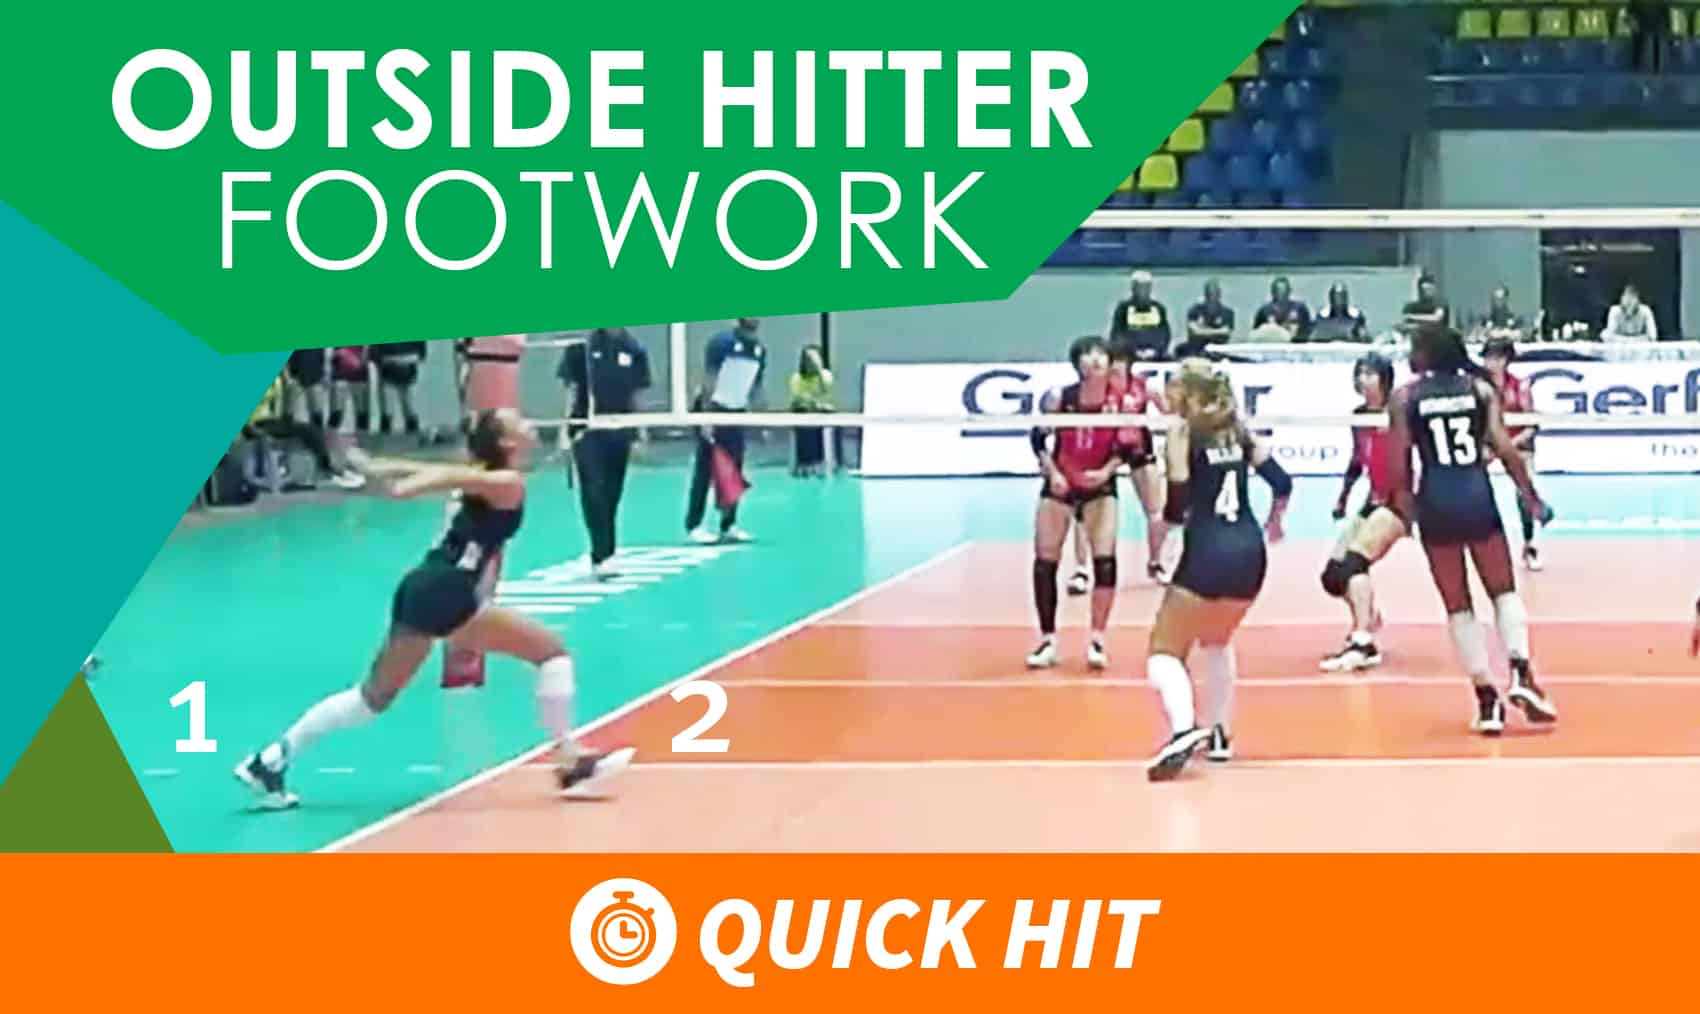 Outside Hitter Transition Footwork